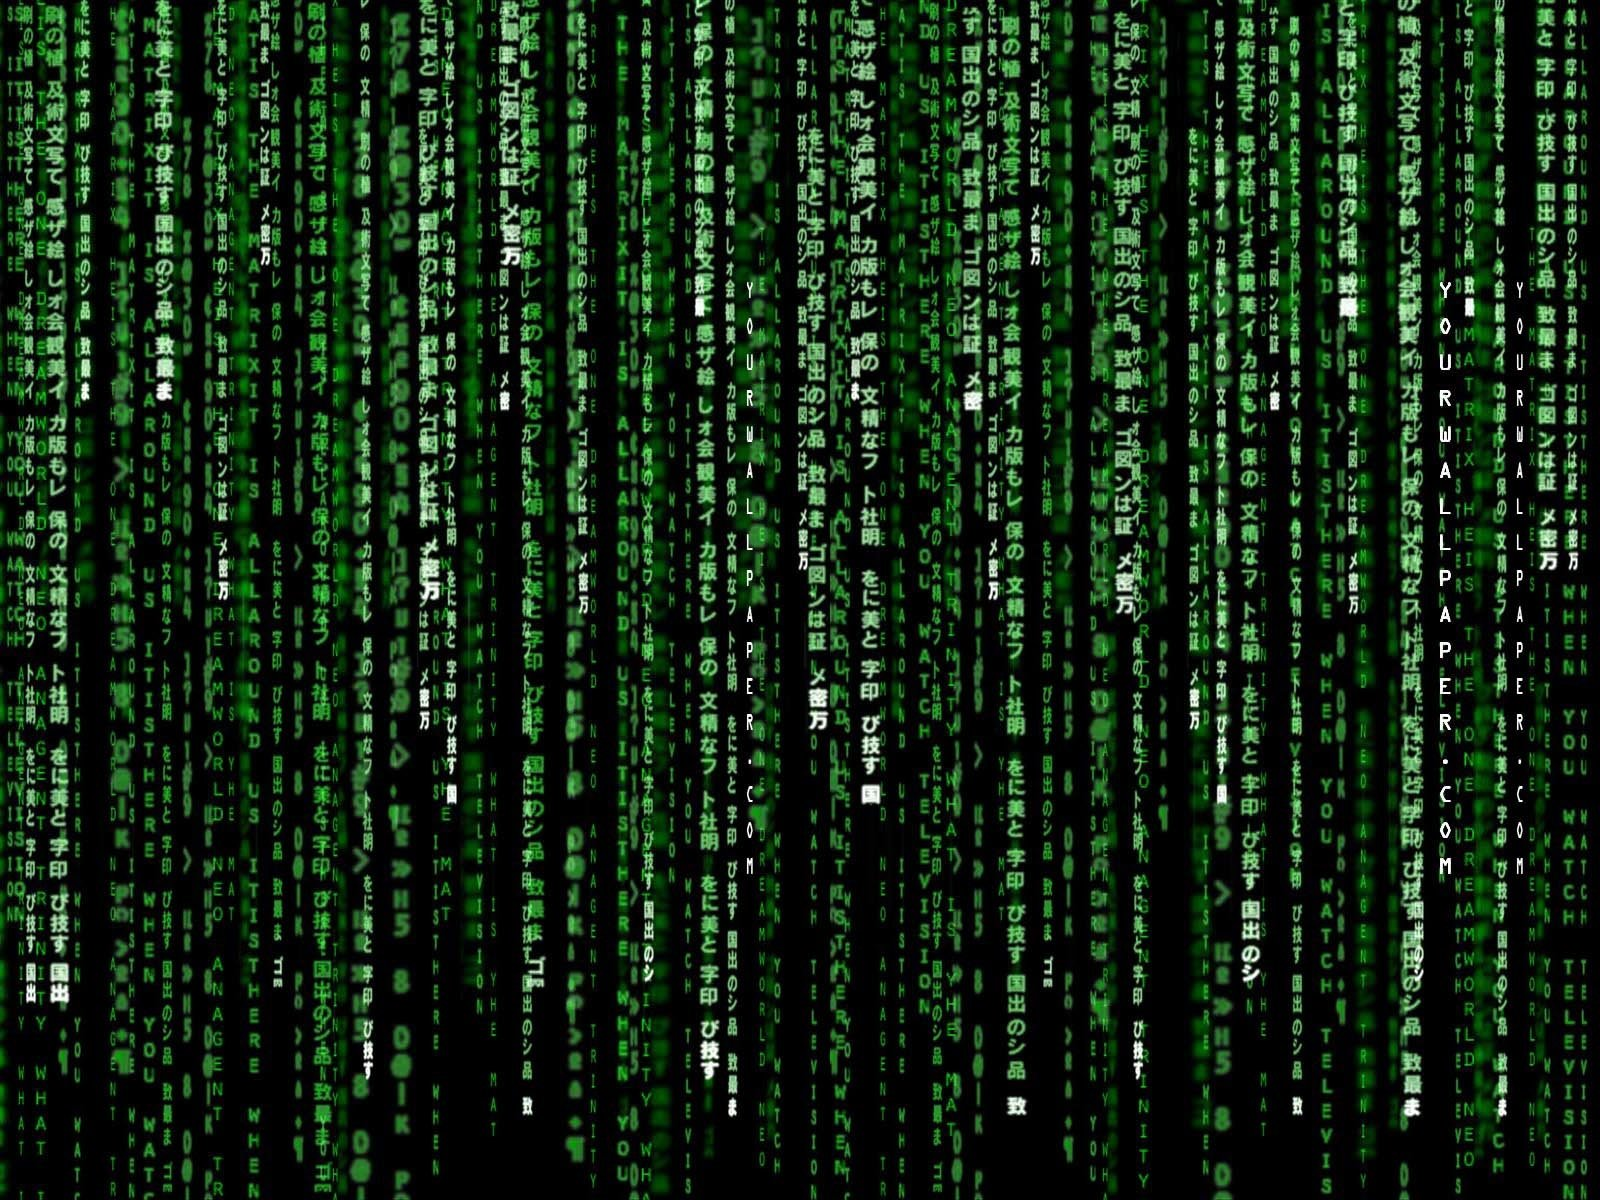 Matrix Wallpaper Hd - WallpaperSafari